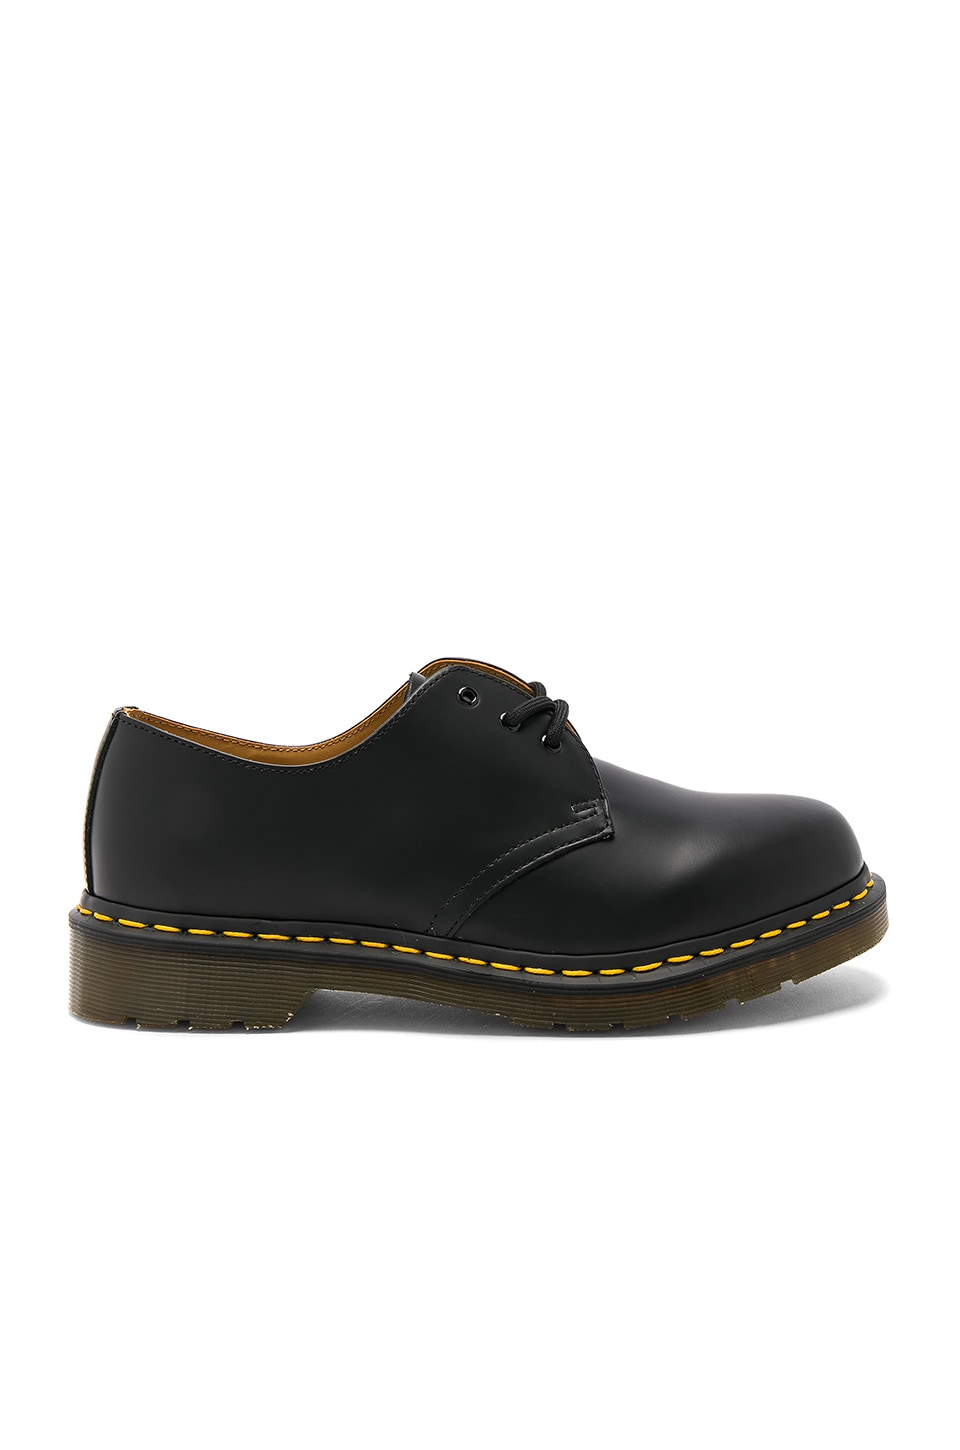 1461 3 Eye Gibson by Dr. Martens